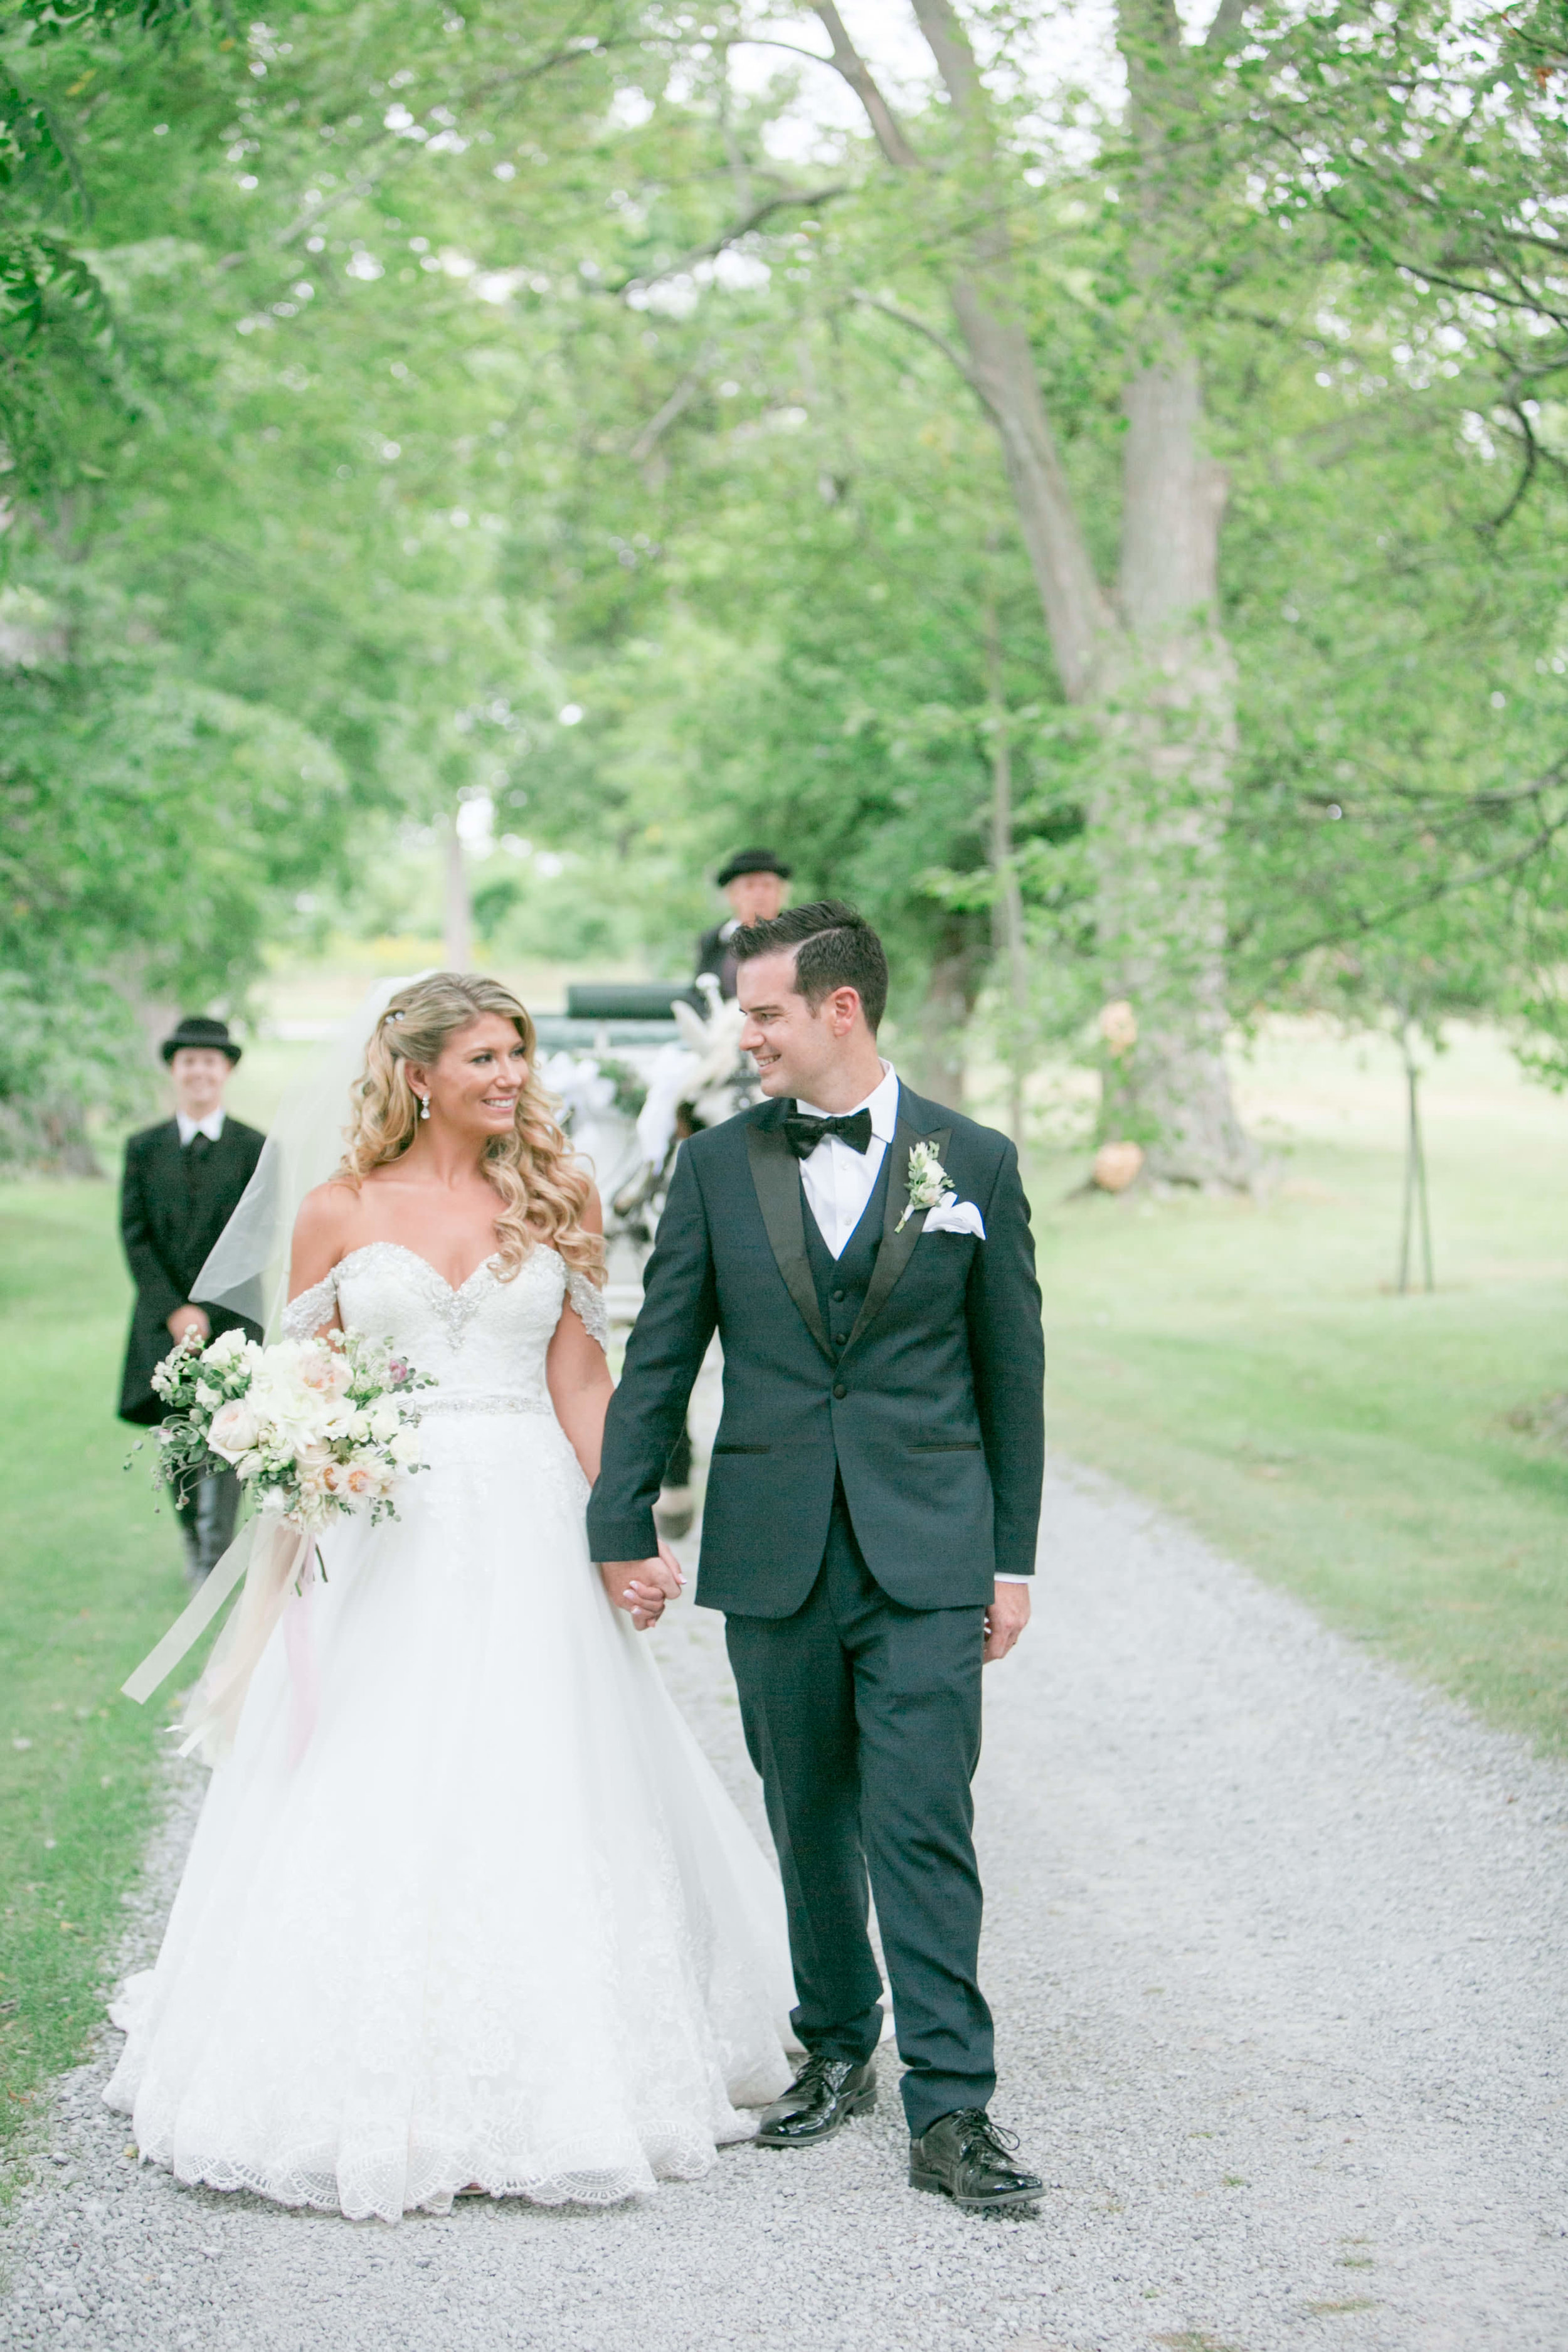 Ashley___Zac___Daniel_Ricci_Weddings___High_Res._Finals_437.jpg